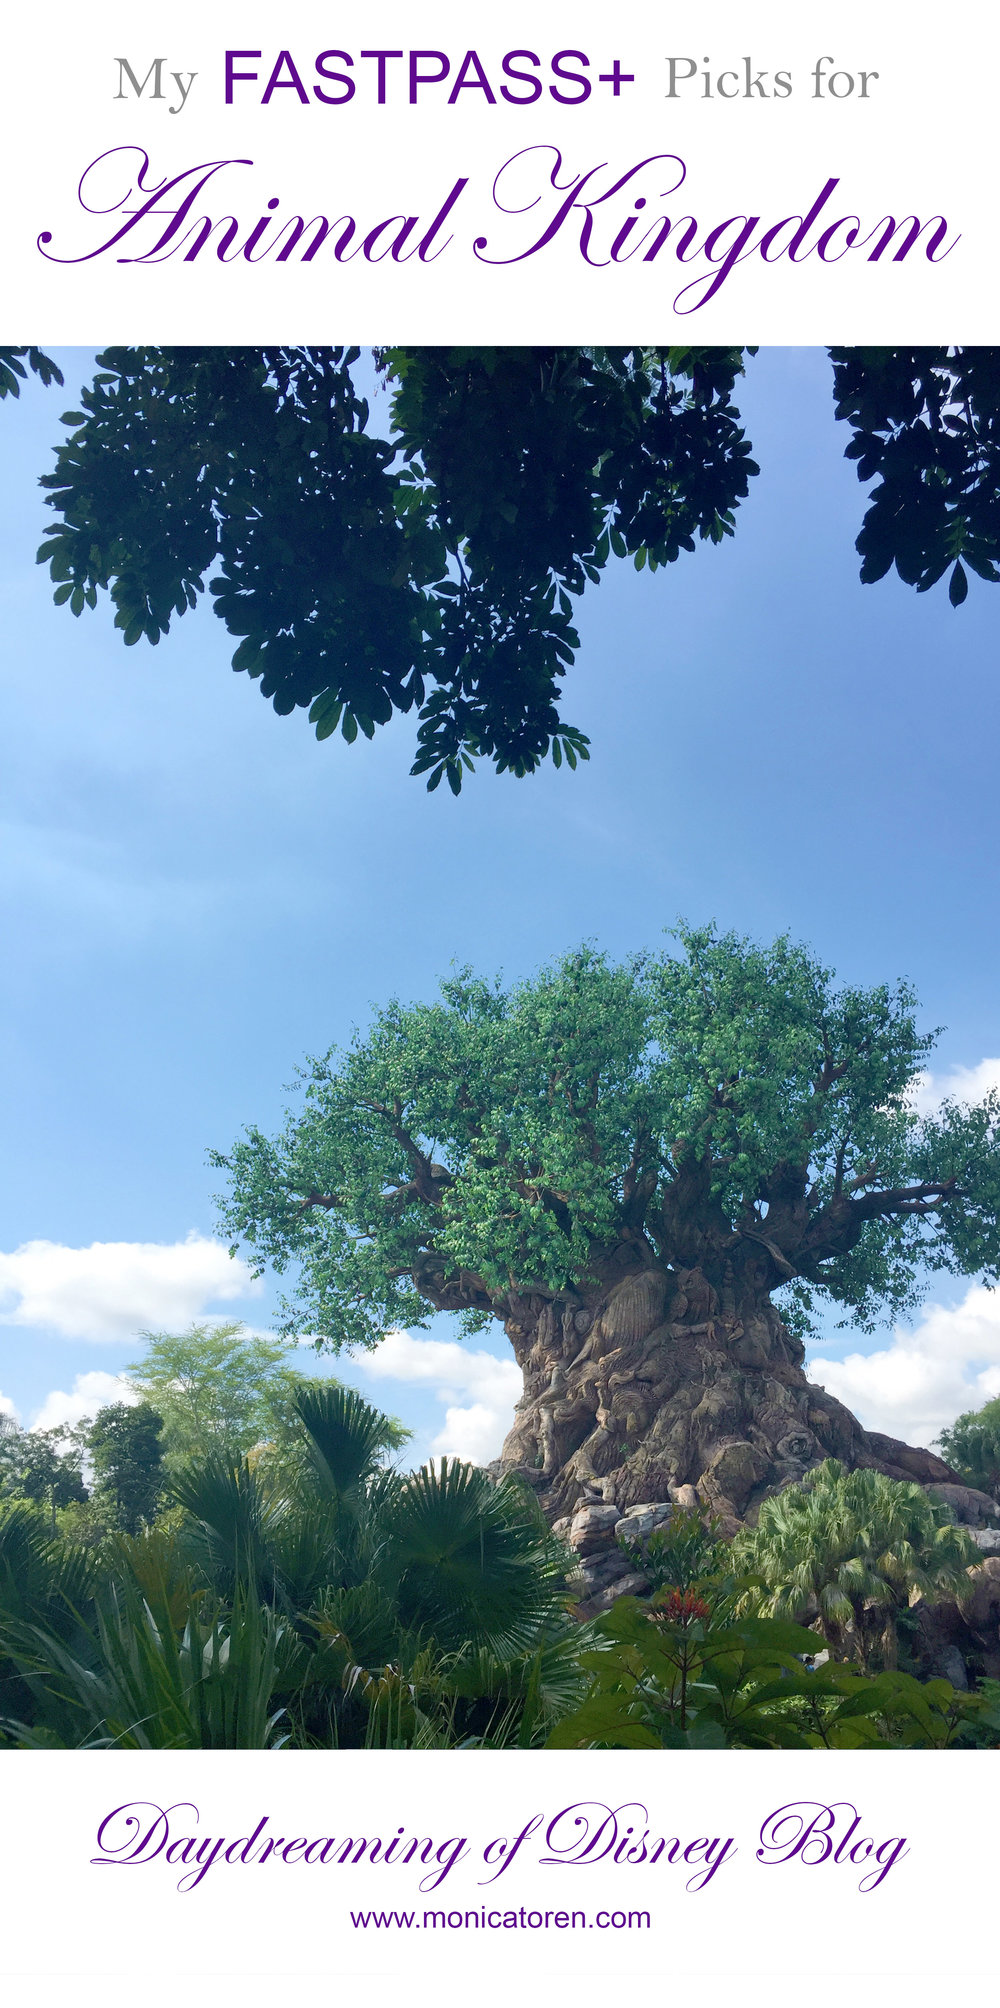 Daydreaming of Disney Blog - My Fastpass Picks for Animal Kingdom - http://www.monicatoren.com #disney #fastpass #disneyworld #disneyworldplanning